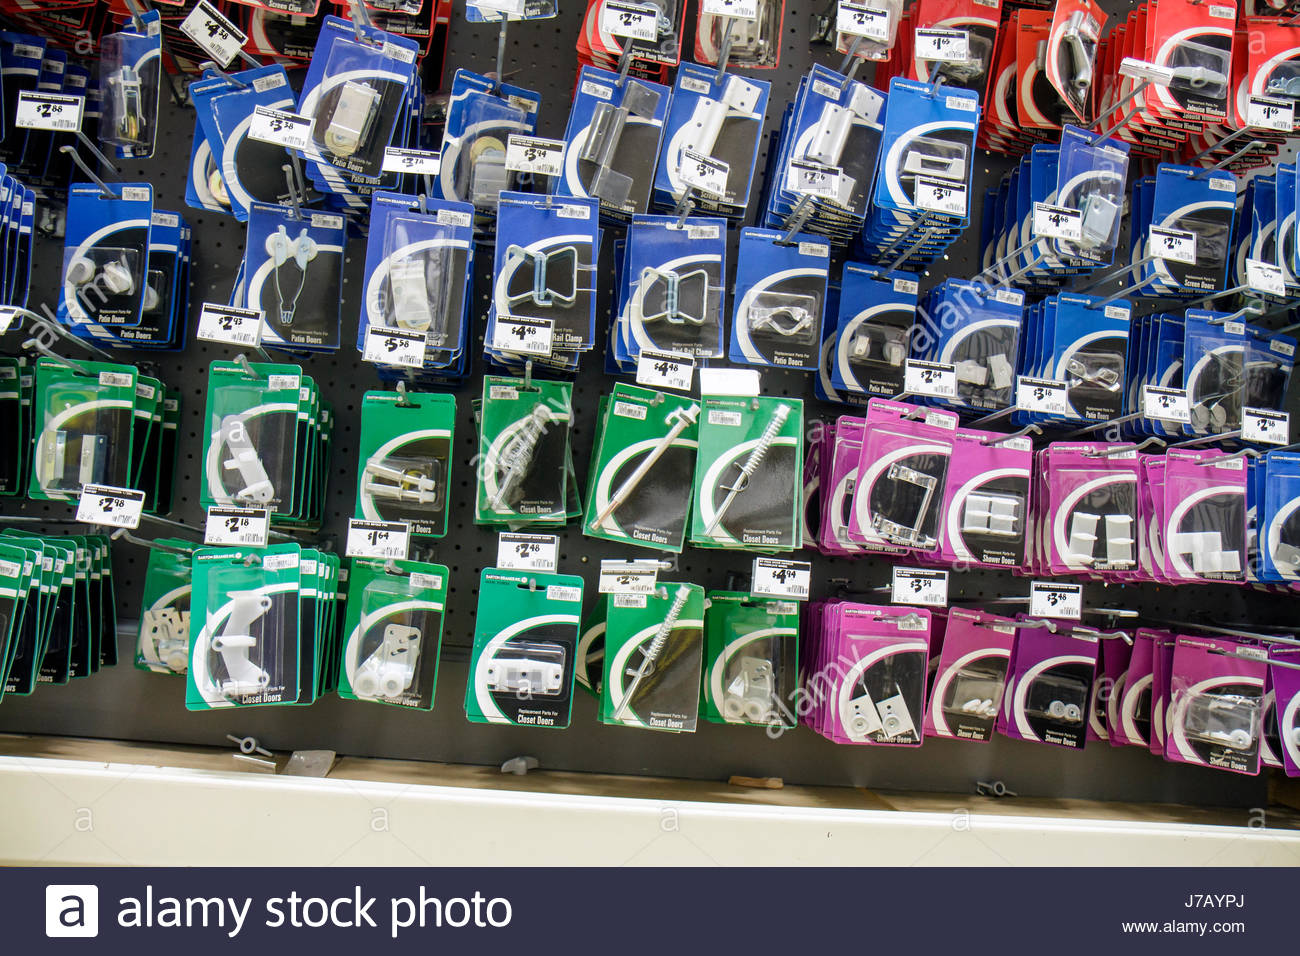 Miami Coconut Grove Florida The Home Depot door parts hinges fasteners retail display packaging for sale - Stock Image